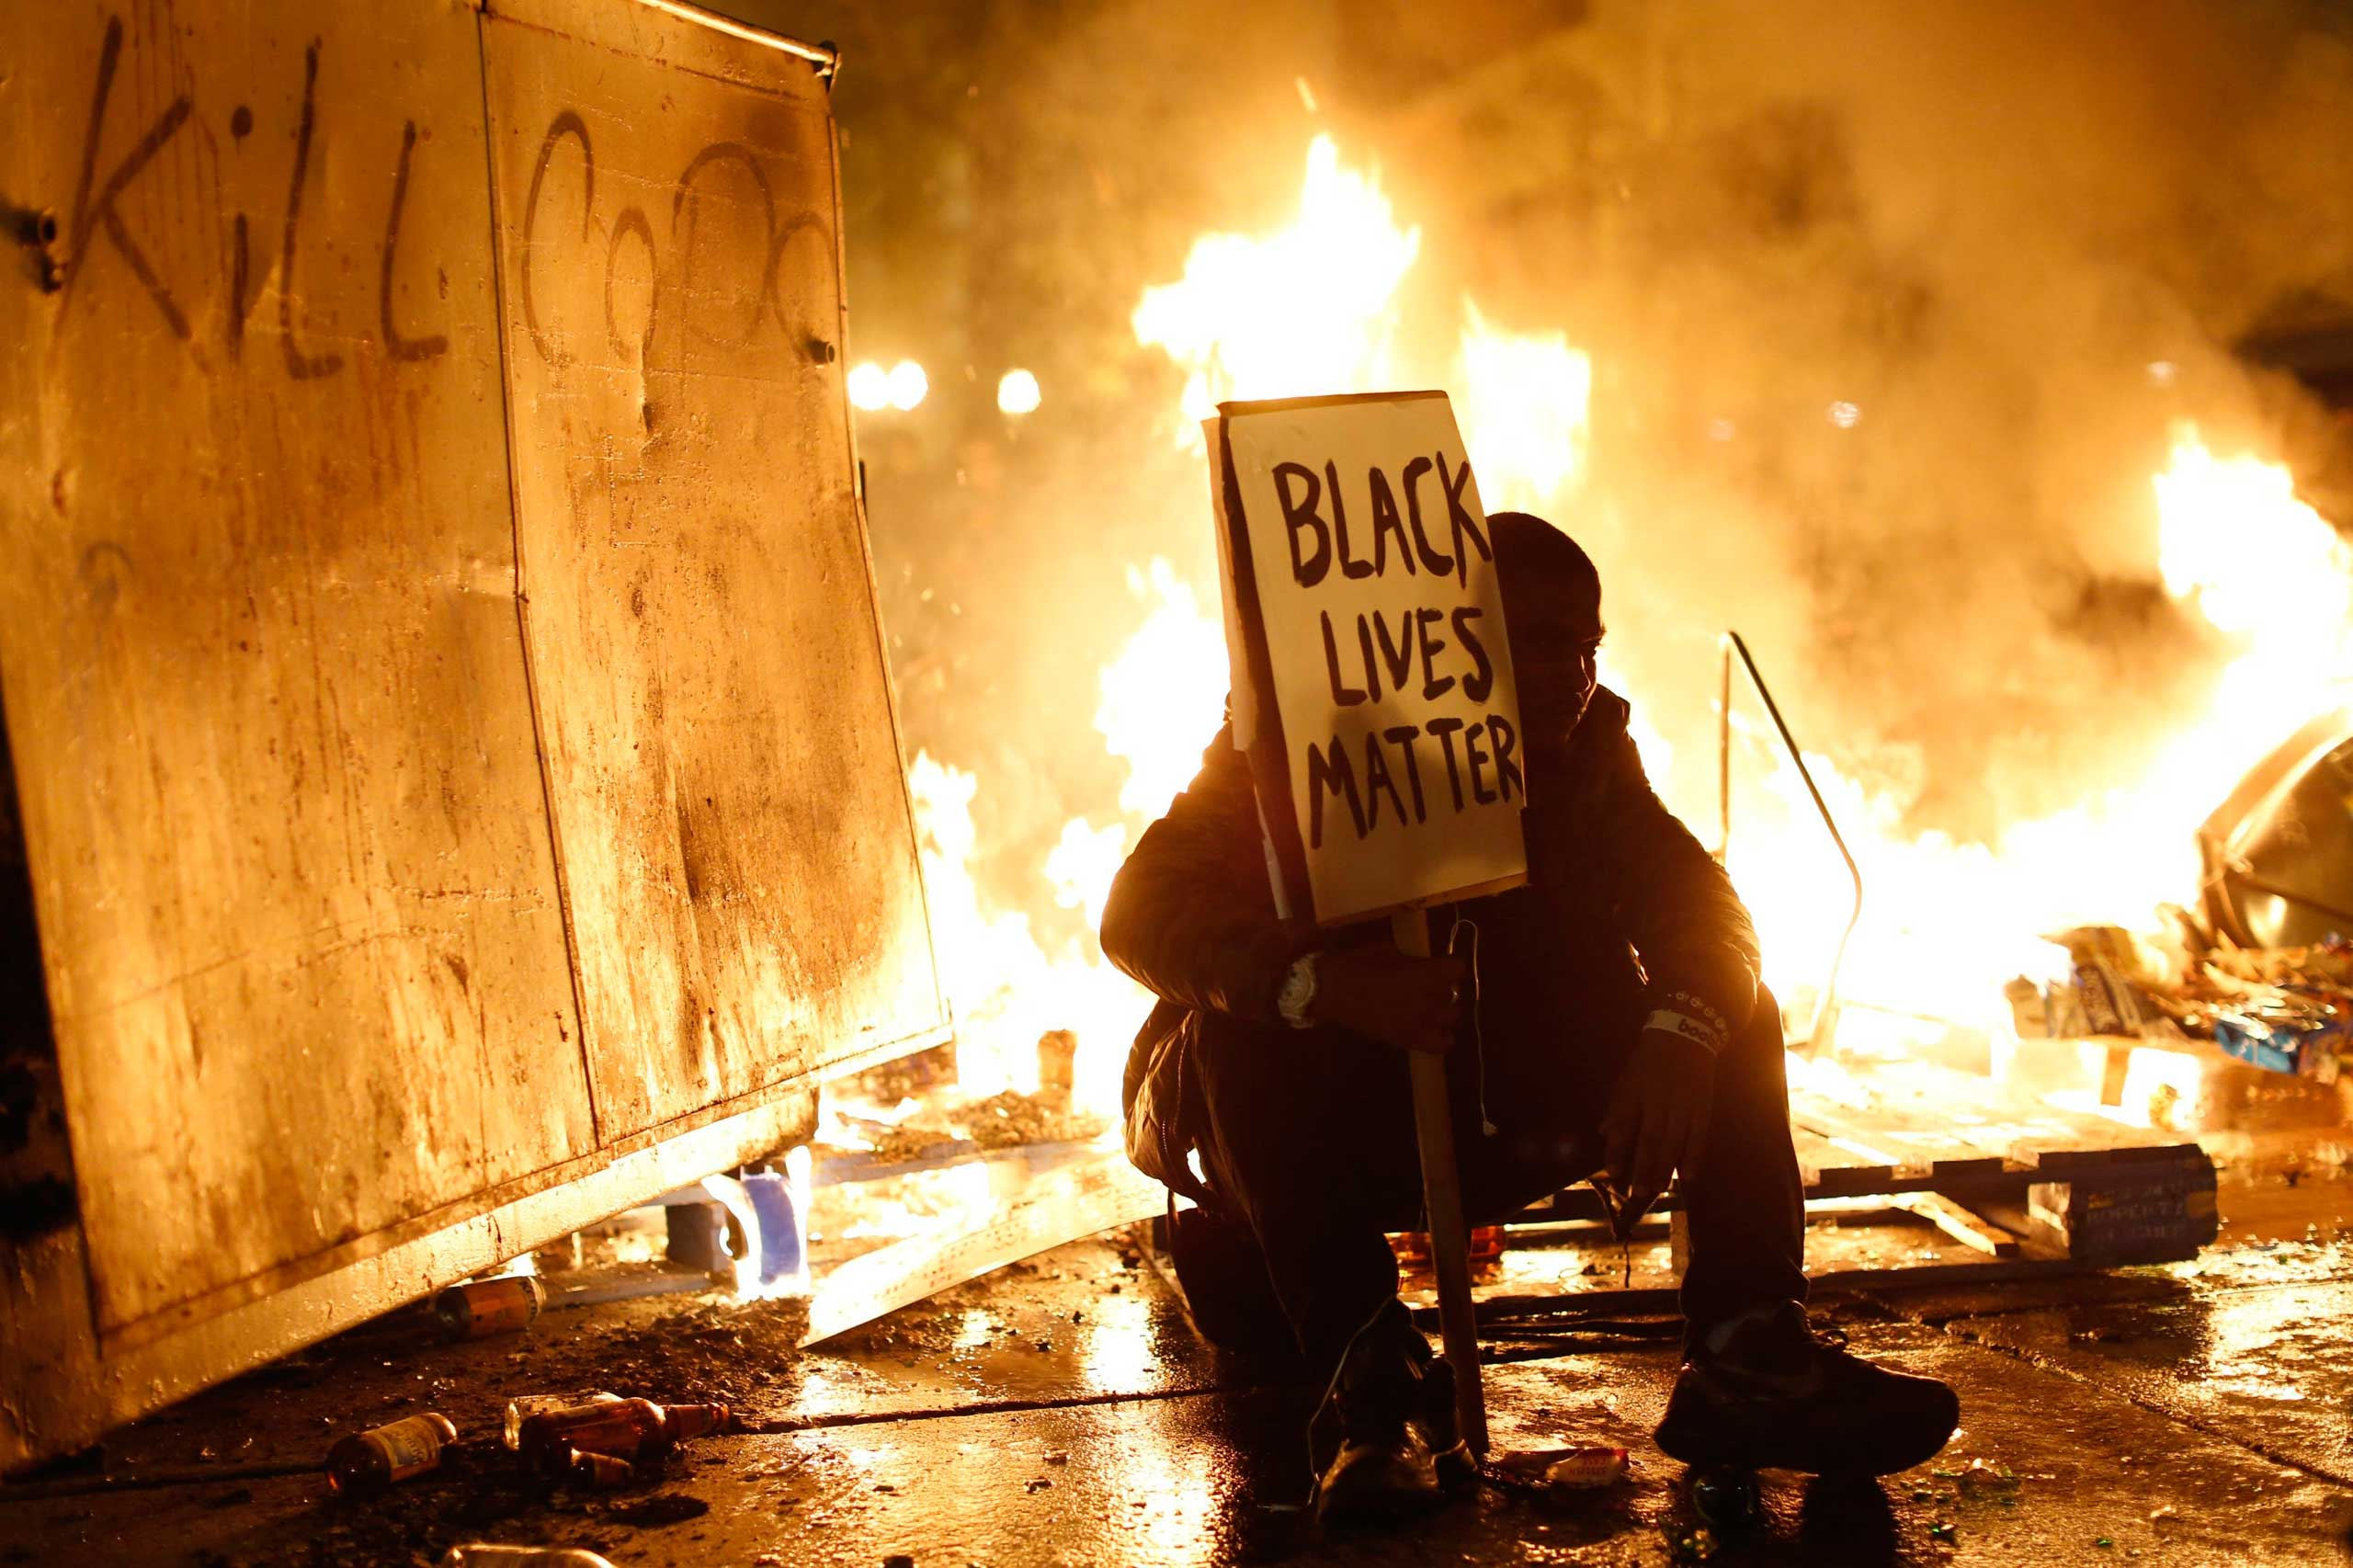 Nov. 25, 2014. A demonstrator sits in front of a street fire in Oakland, Calif. Protests around the U.S. broke out following a grand jury decision not  to indict white police officer Darren Wilson over the fatal shooting of 18-year-old unarmed black teenager Michael Brown.